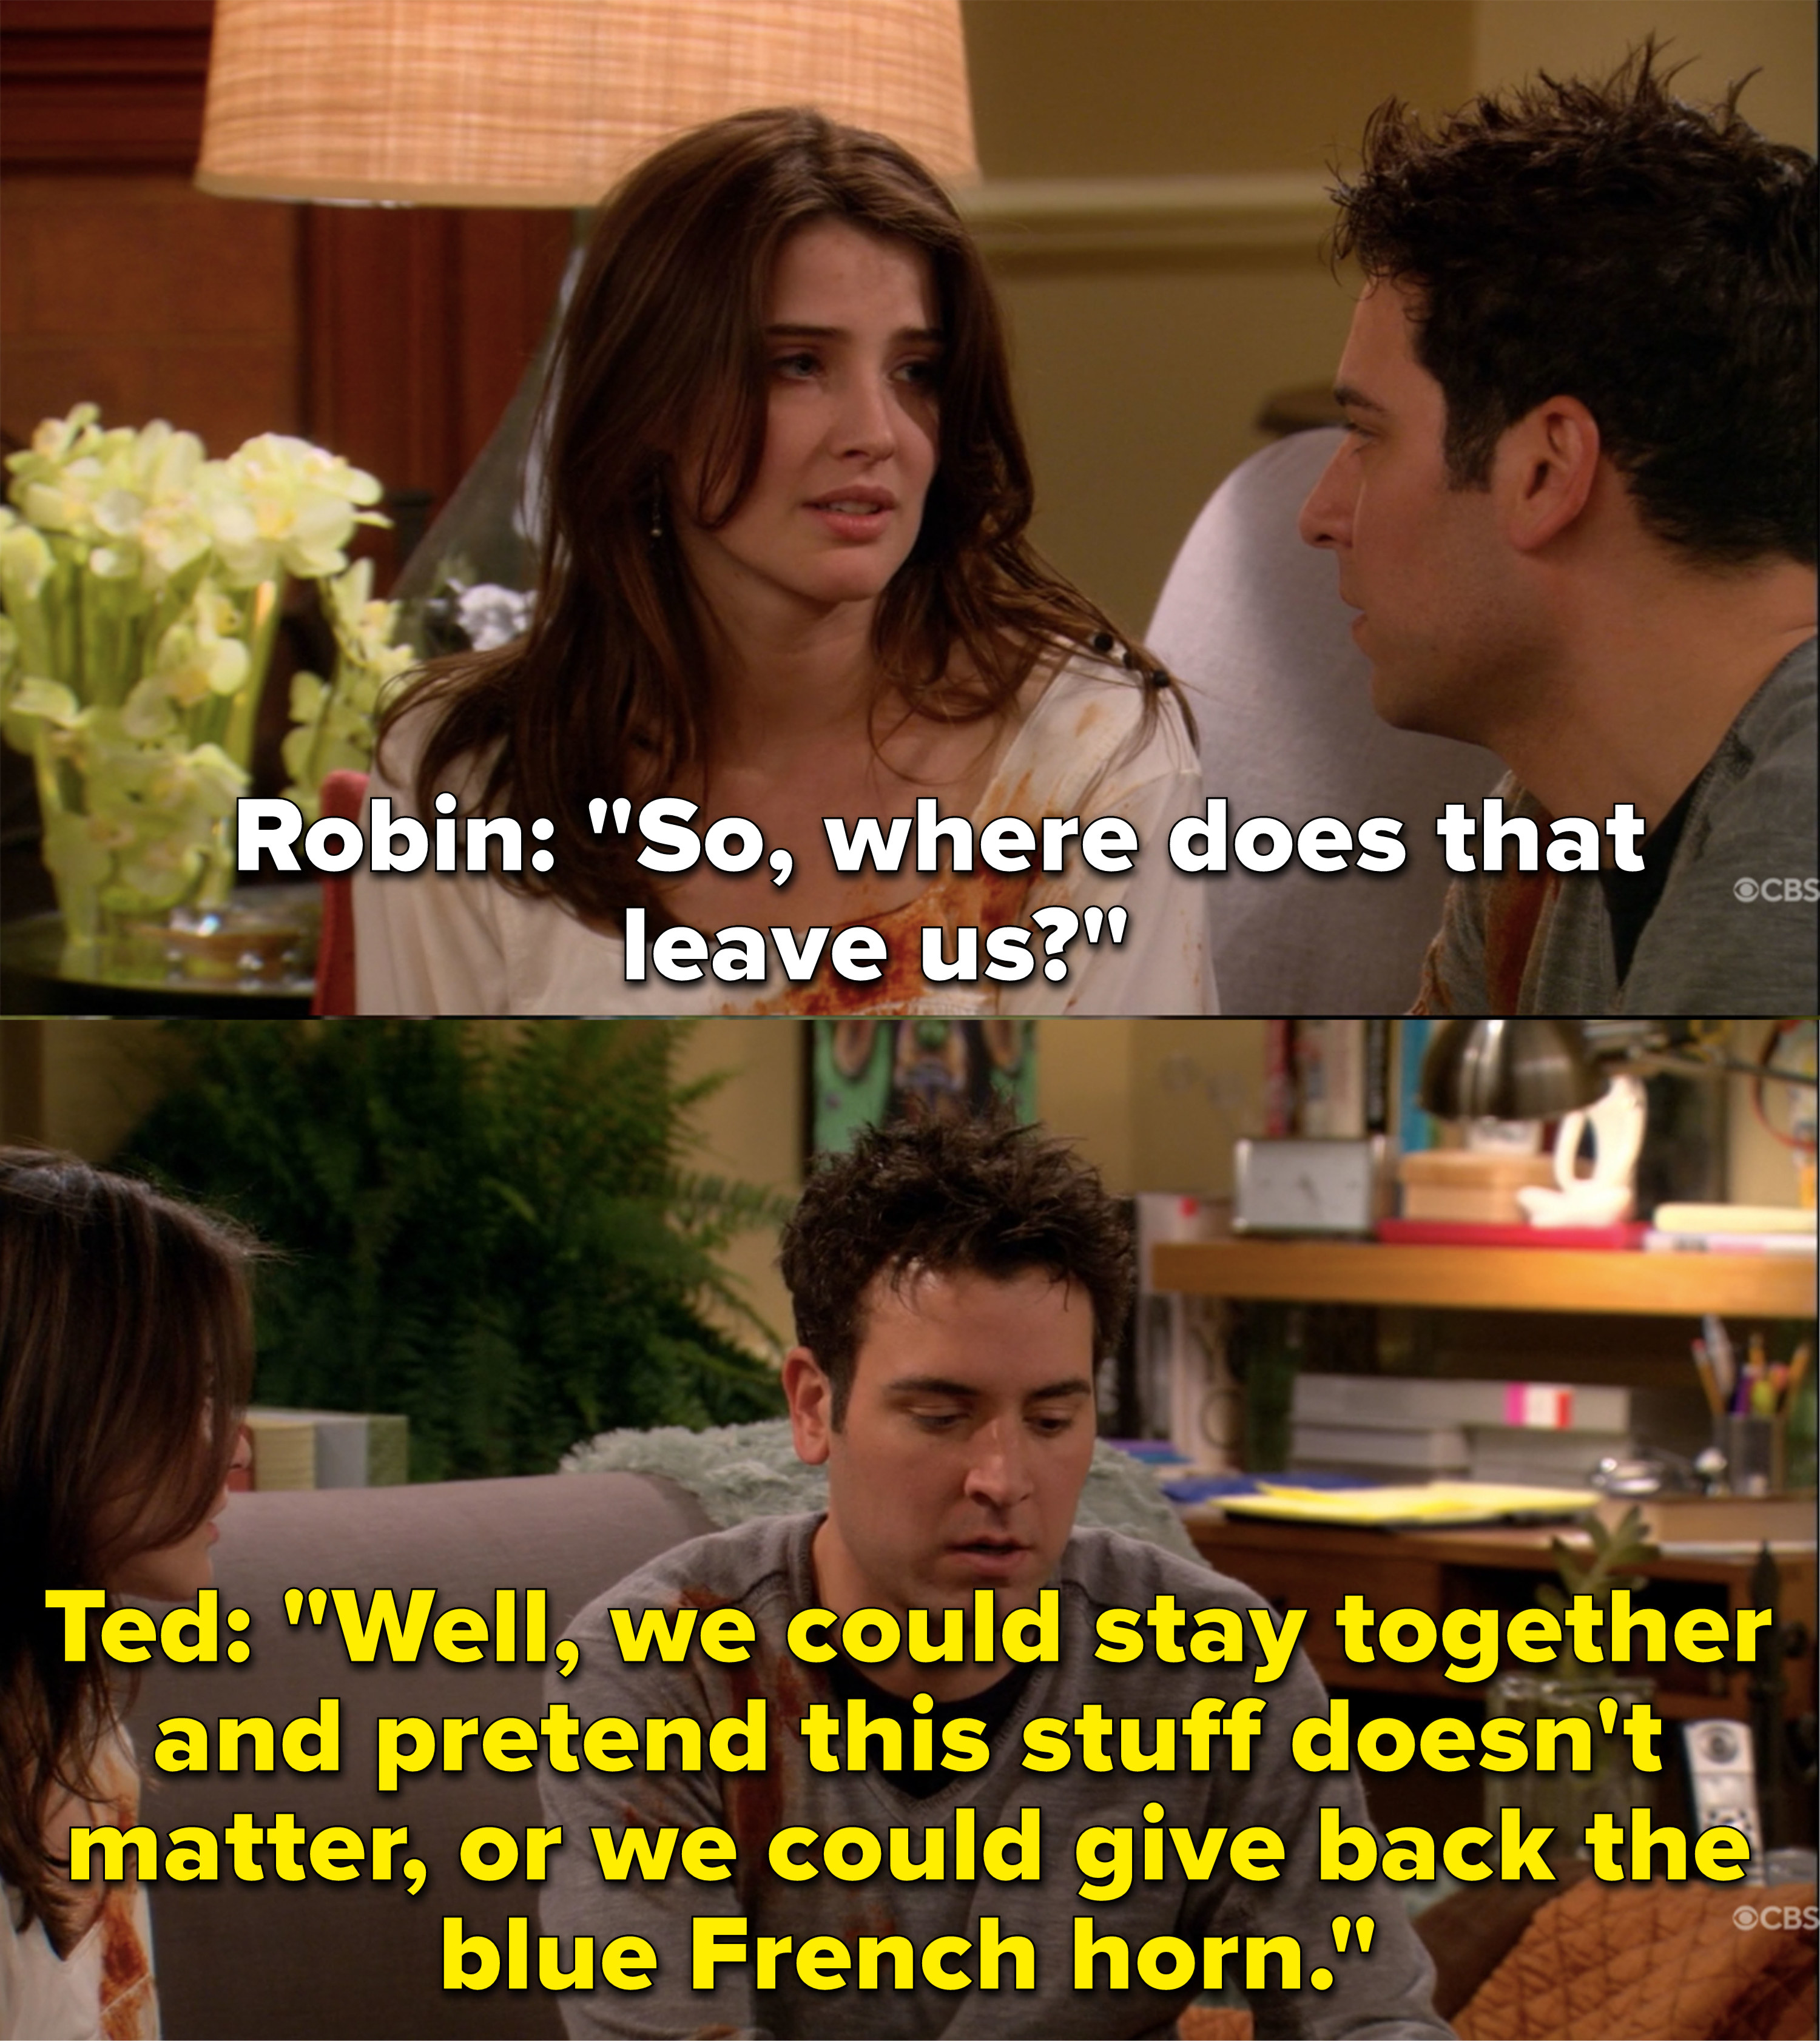 Robin asks where they stand and Ted says they can either stay together and pretend their differences don't matter or give back the blue French horn